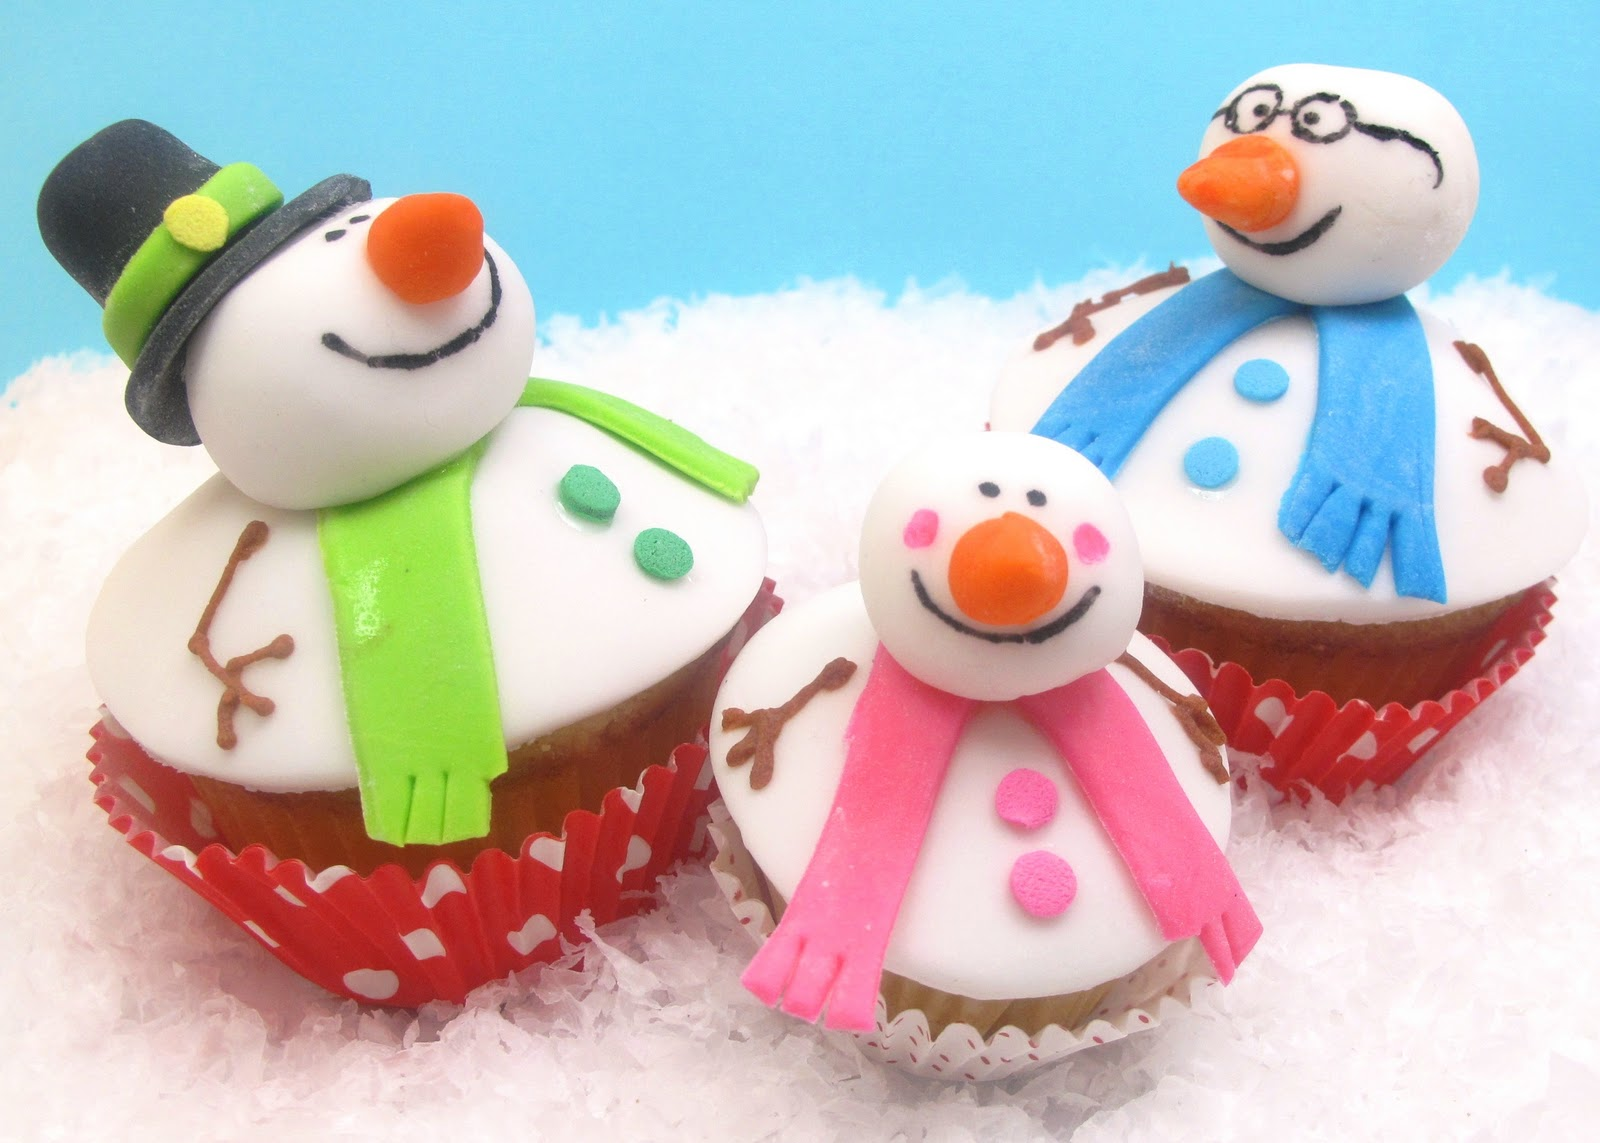 Snowman Holiday Special Cup Cakes